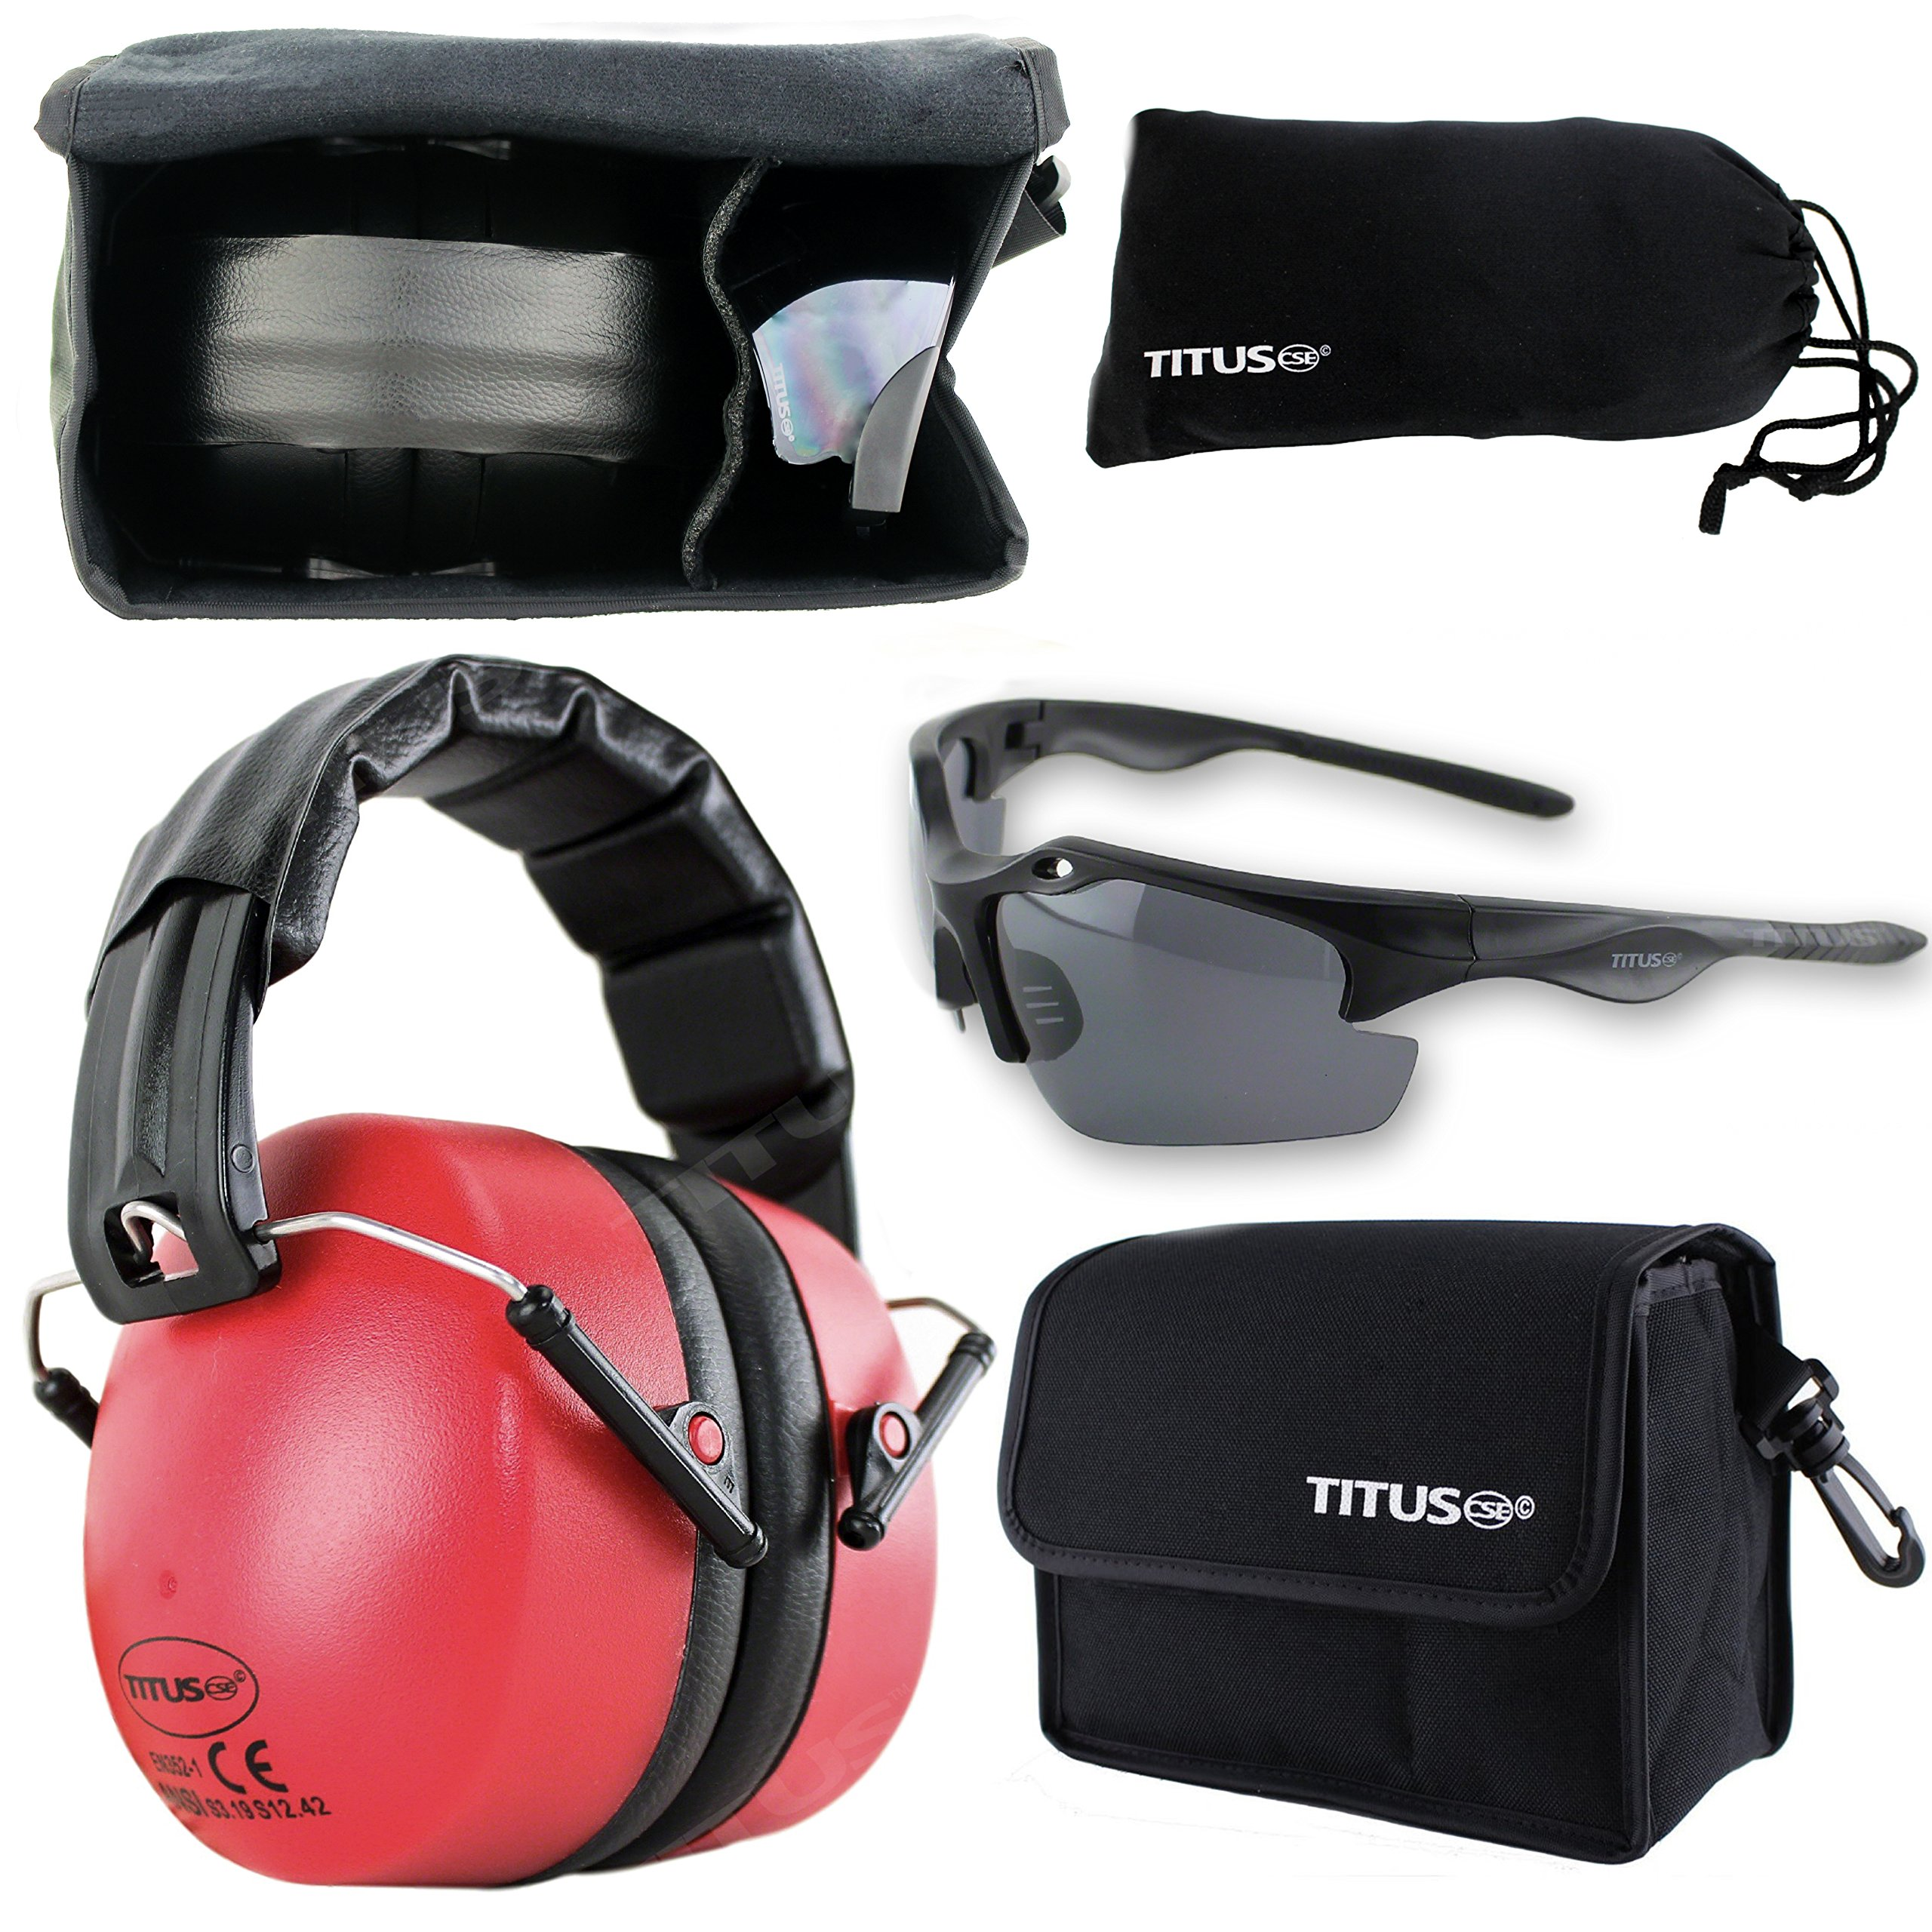 Titus 37 Decibel NRR Red Safety Earmuffs & Glasses Combo by Titus